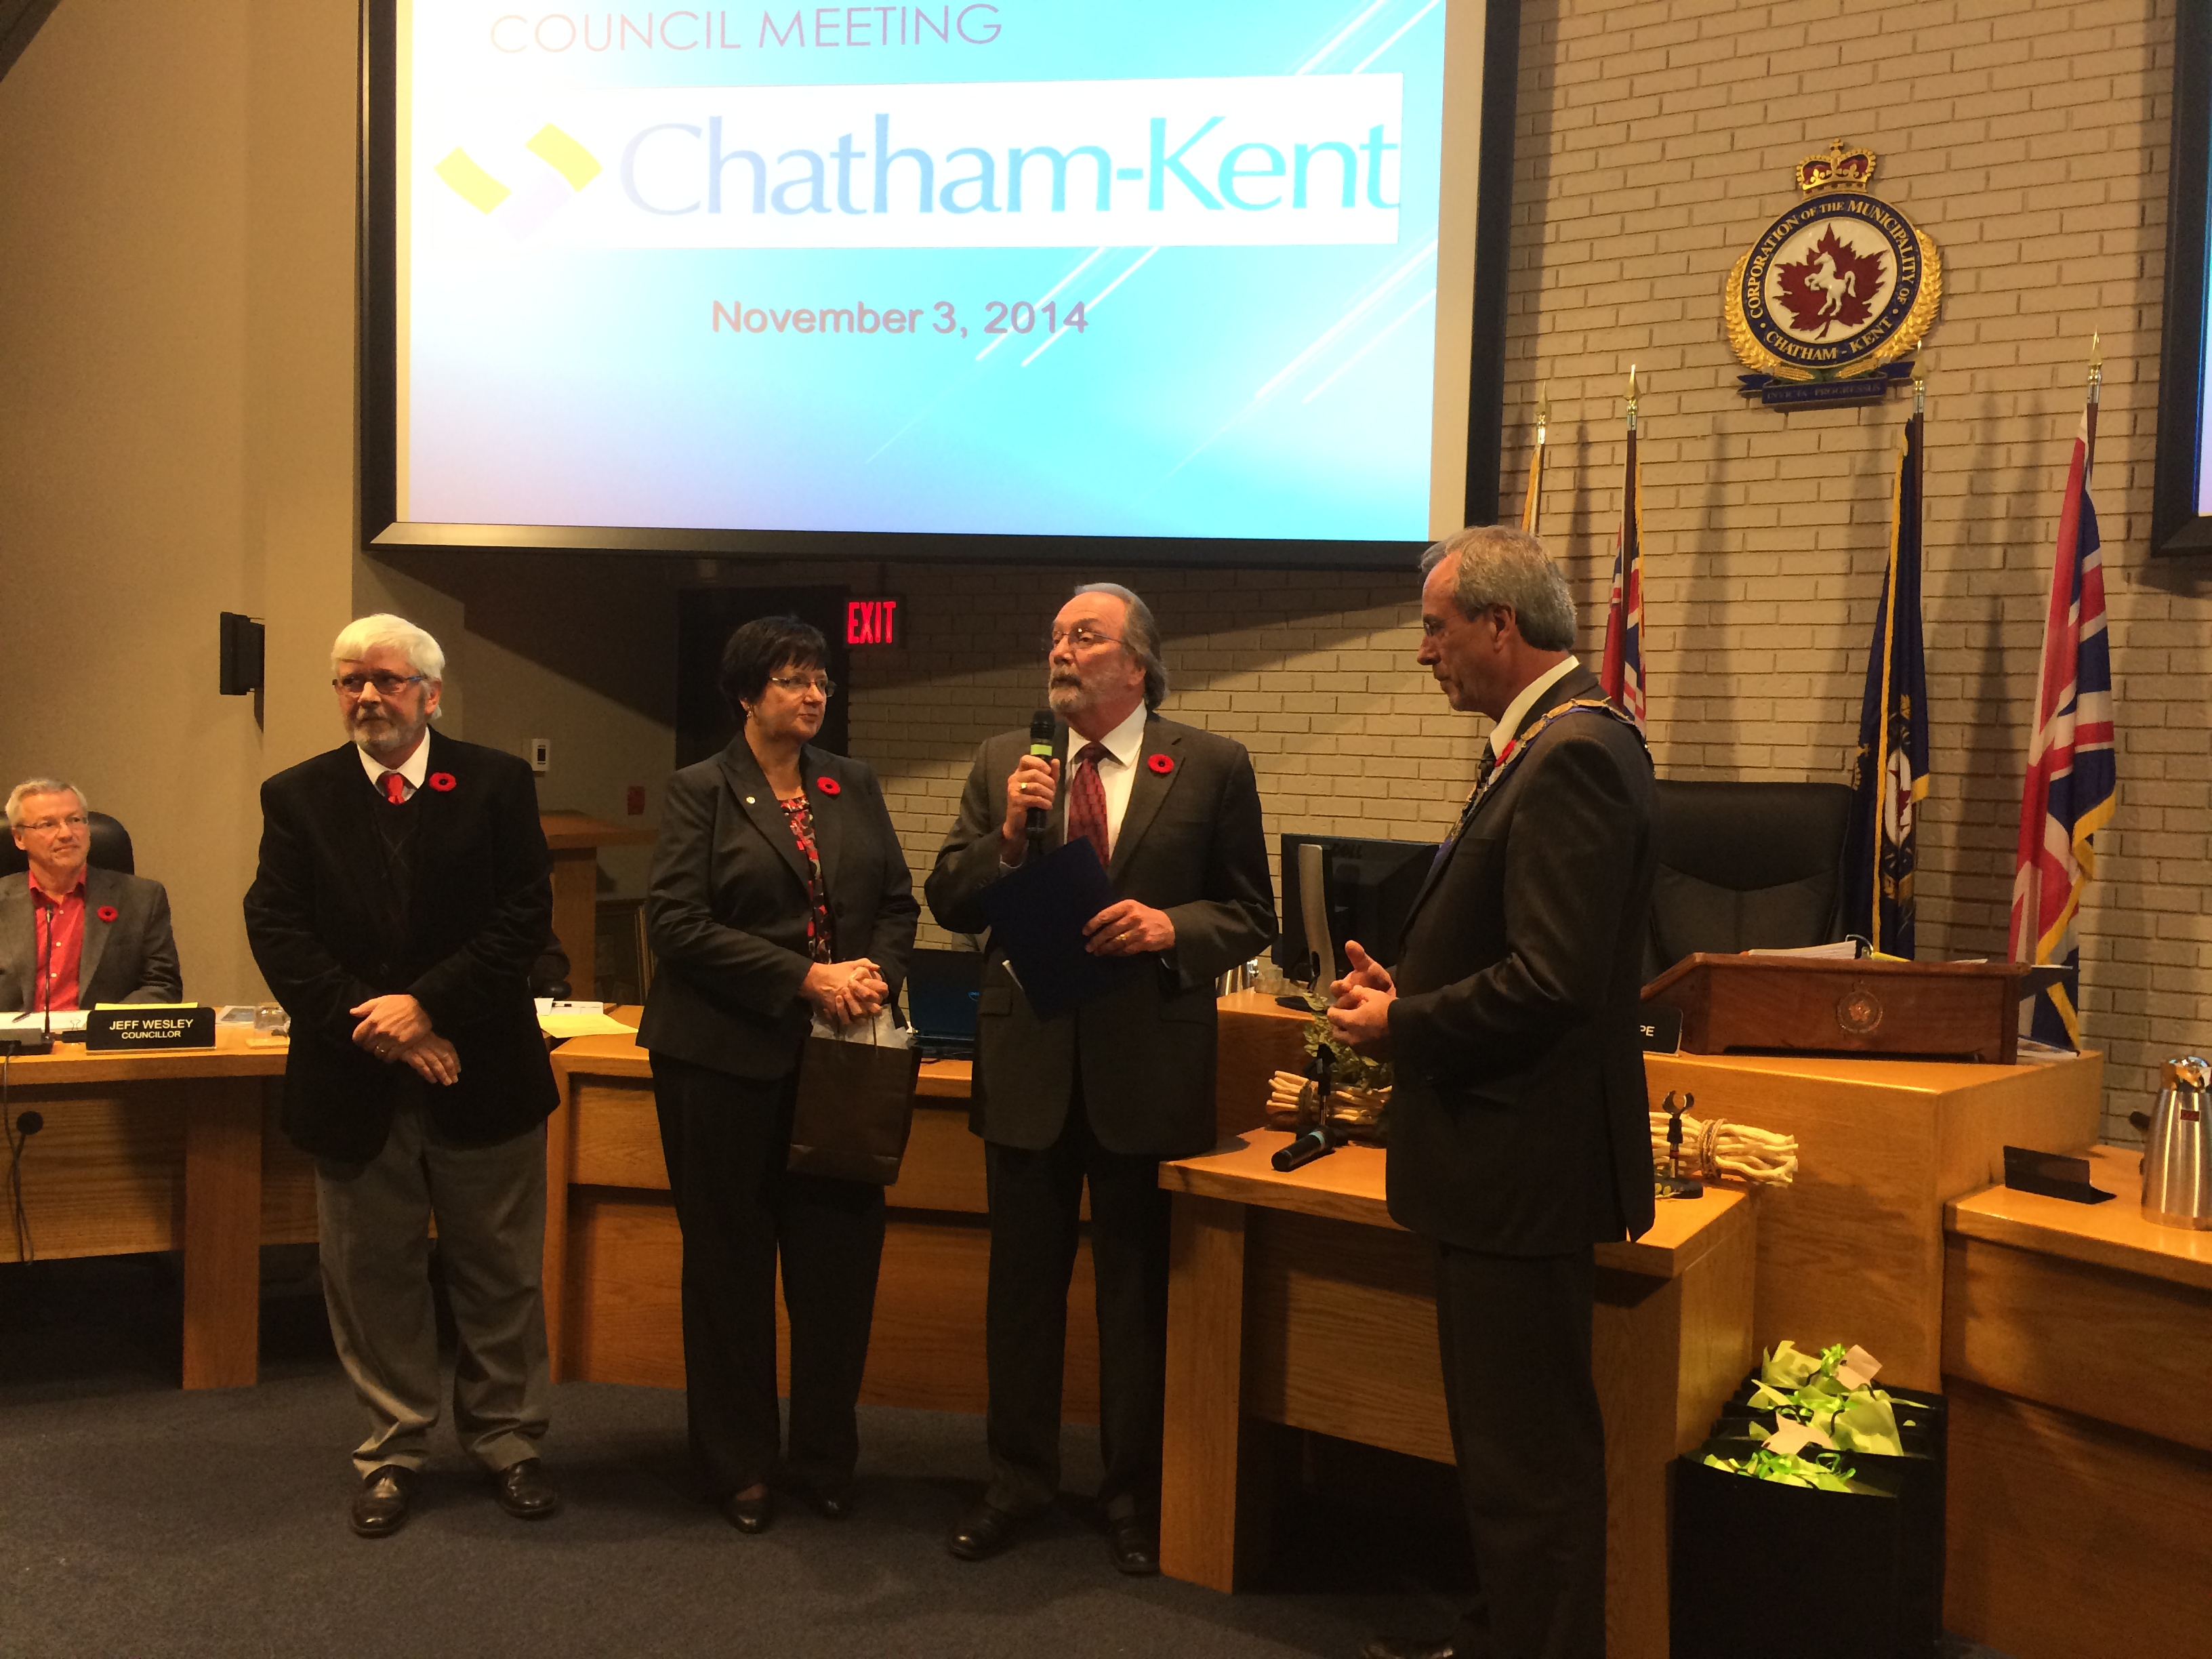 Dr. John R. Button is recognized by Chatham-Kent Council for being named president of Kiwanis International on the regular council meeting on November 3, 2014. (Photo by Ricardo Veneza)